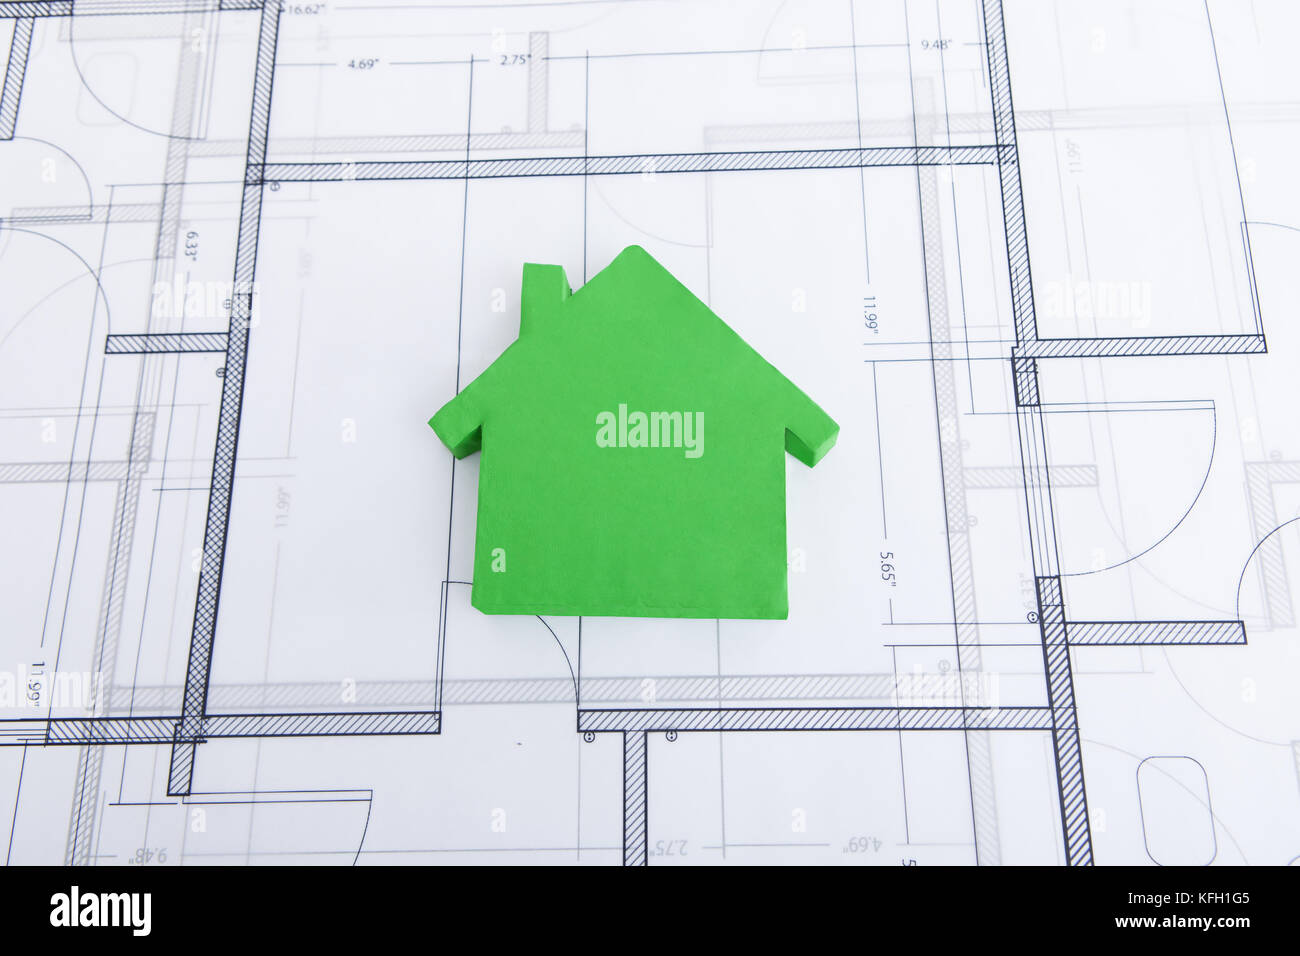 Model home diagram stock photos model home diagram stock images closeup of green house model on blueprint stock image ccuart Image collections